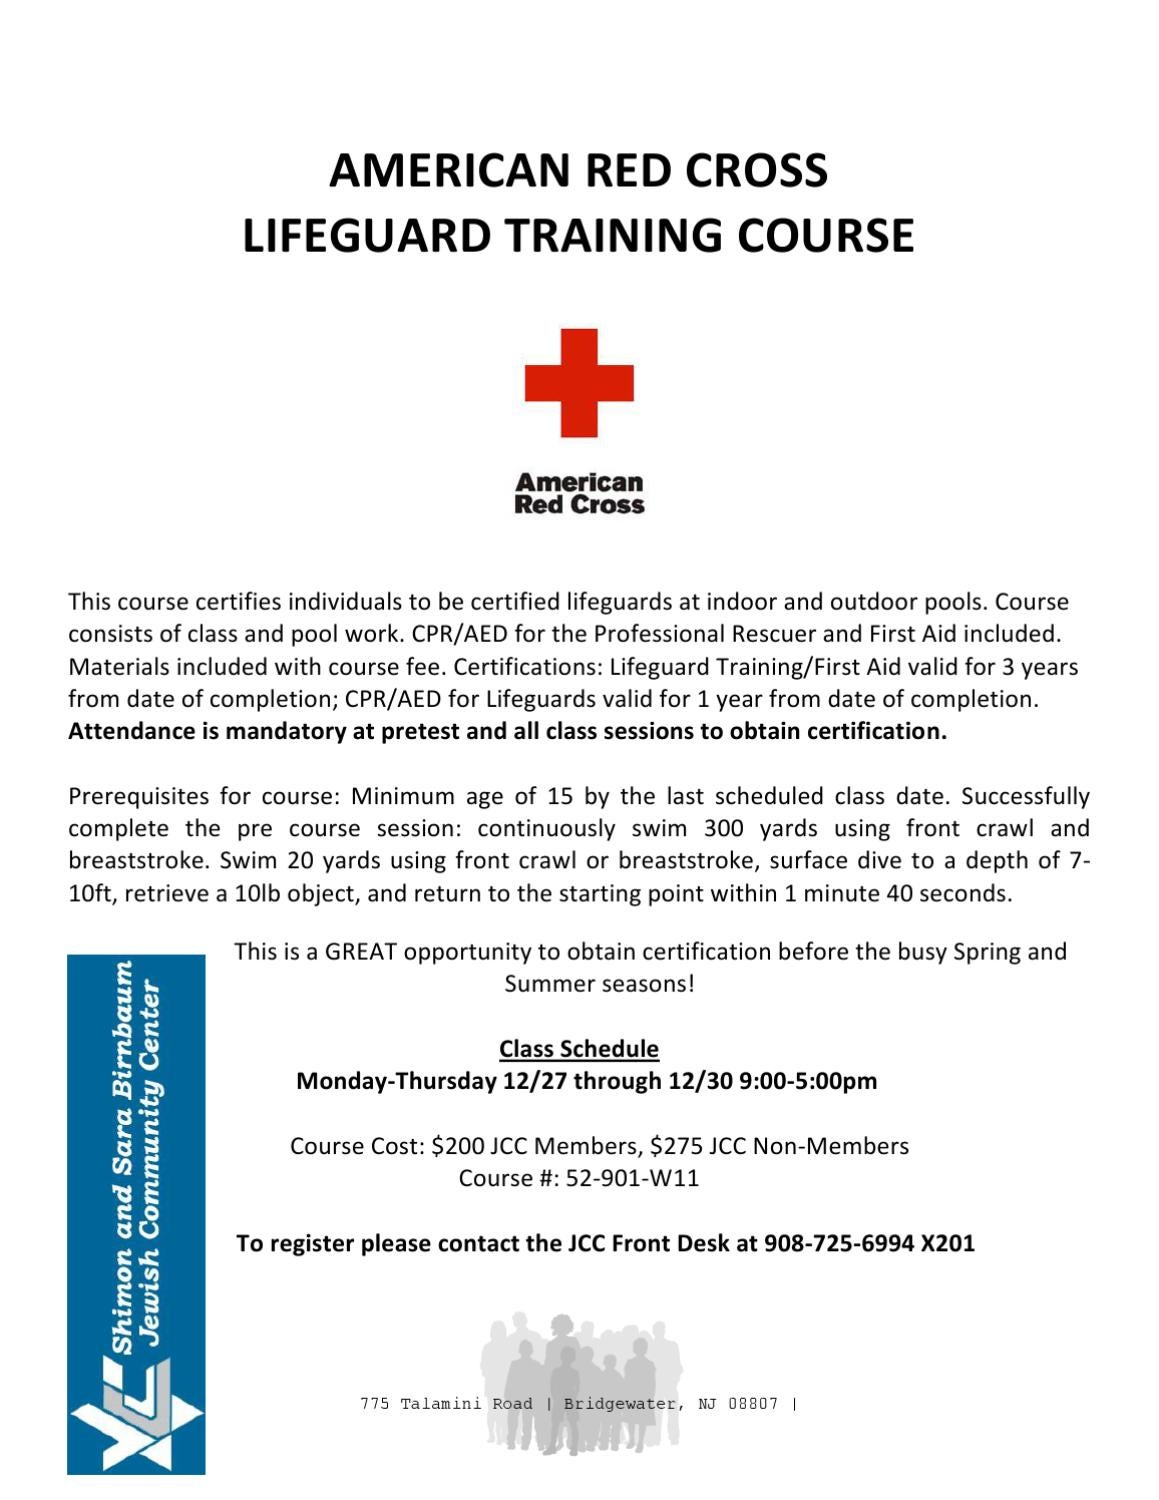 Arc Lifeguard Course Begins 1217 Registering Now By Jeff Gross